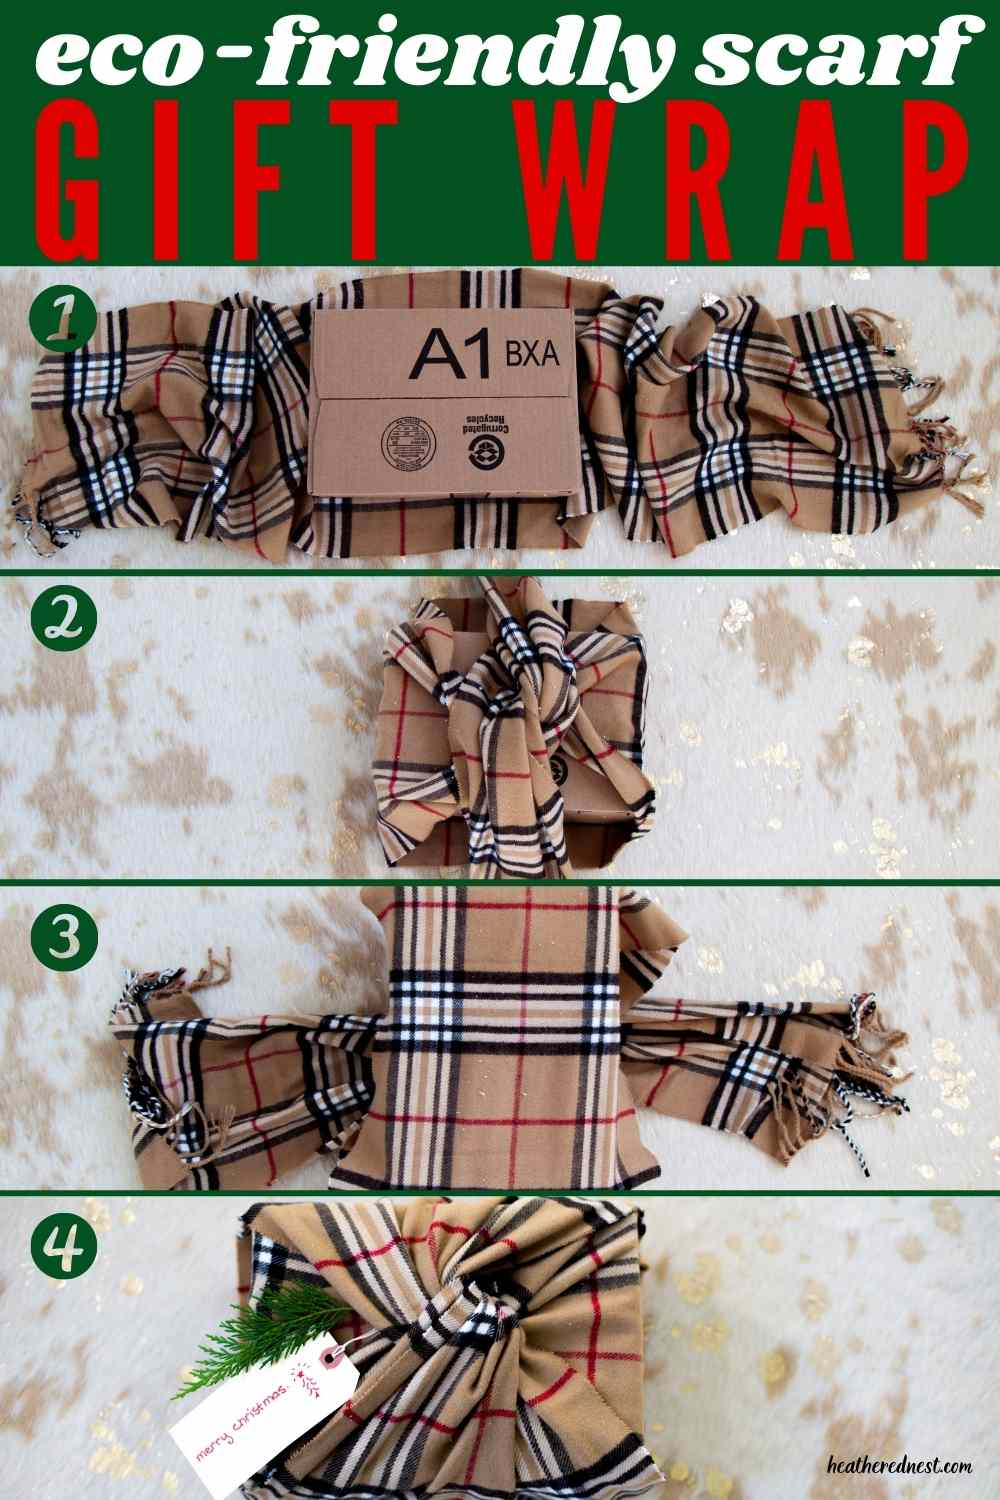 4 steps for easy, eco-friendly holiday gift wrap they'll want to keep! Use a winter scarf for your gift wrap this year!